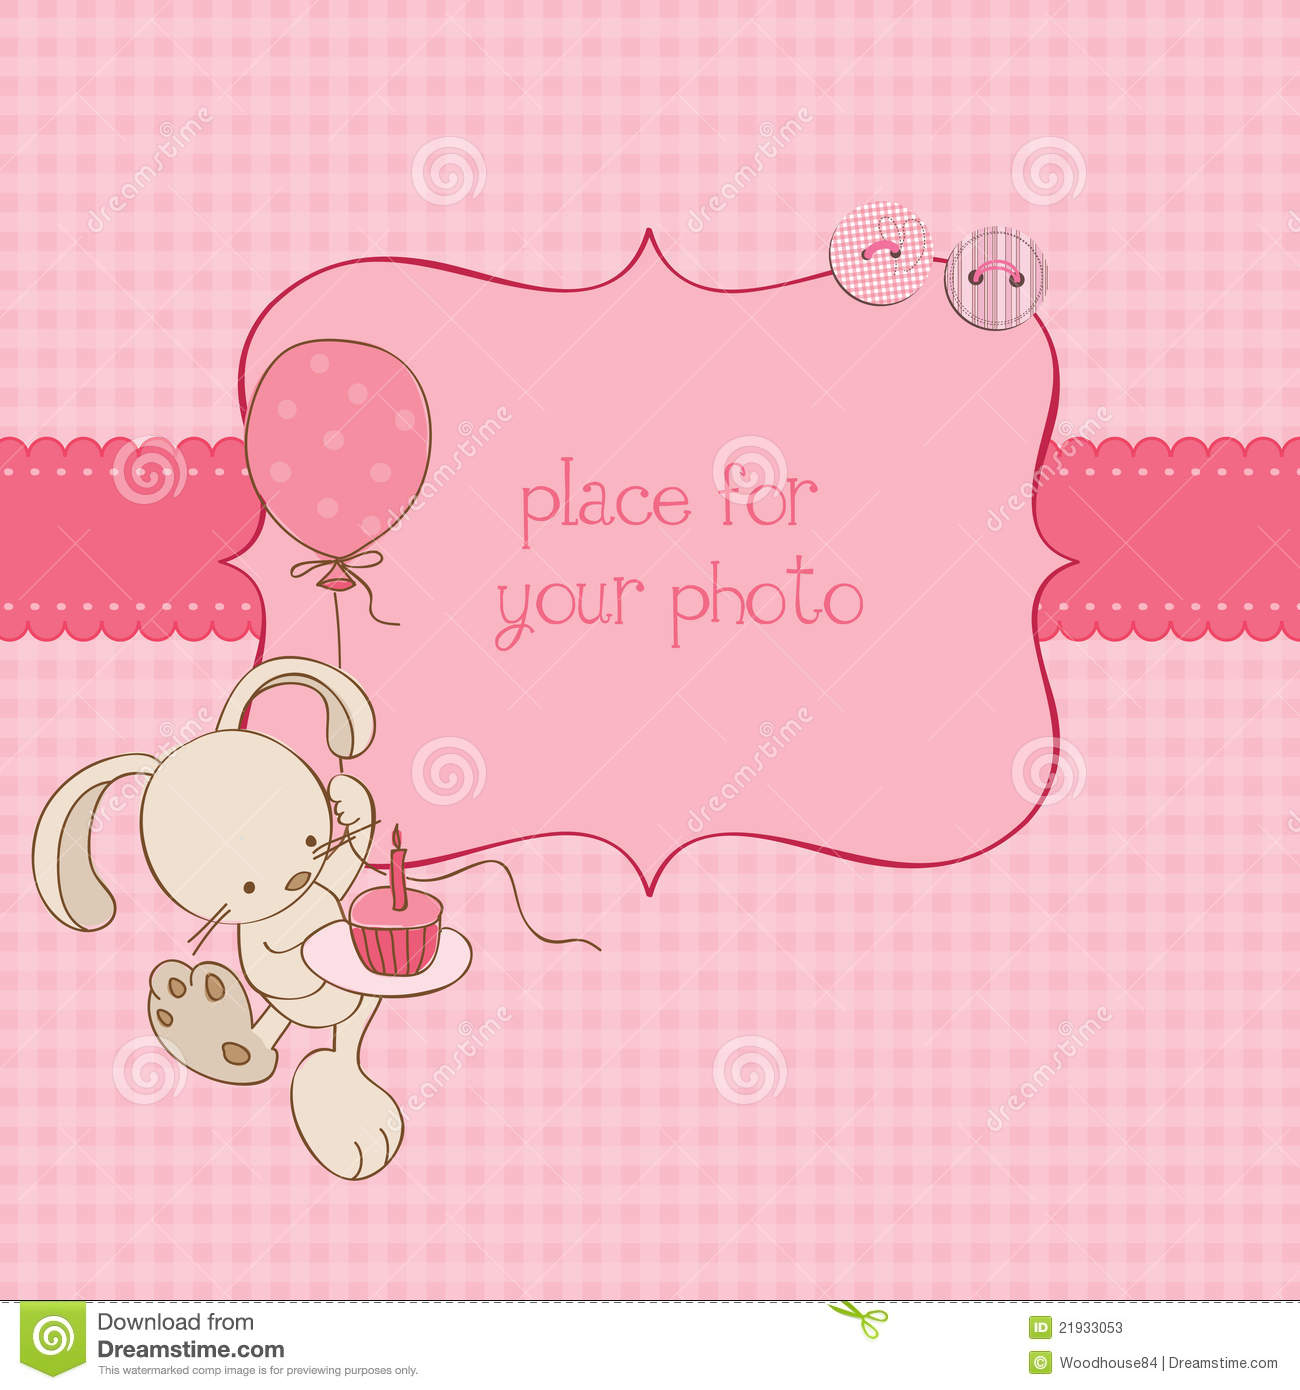 download baby greeting card with photo frame stock vector illustration of balloon design - Baby Greeting Cards